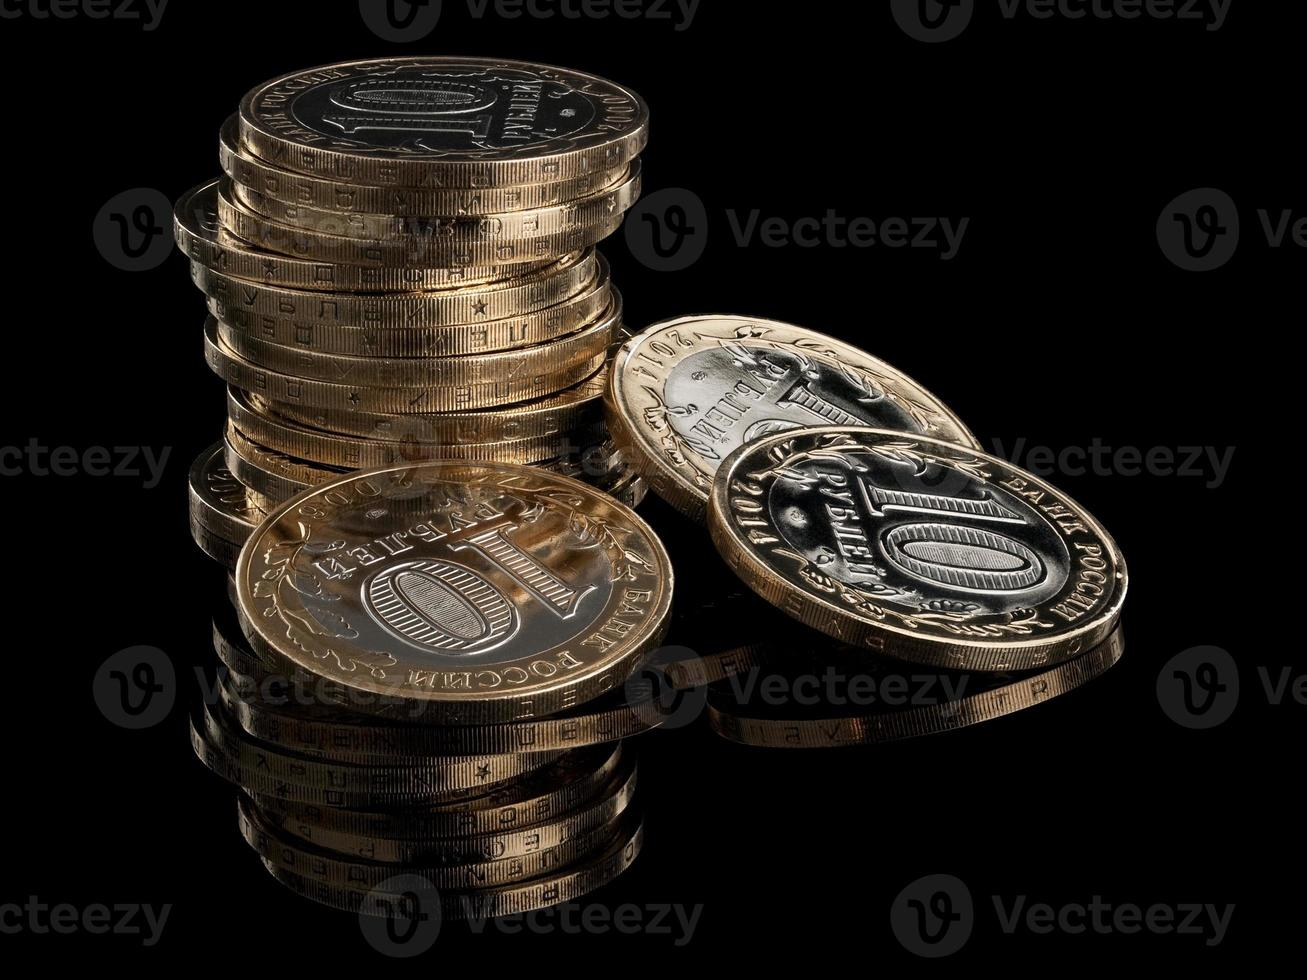 The collapsed tower from the Russian coins photo